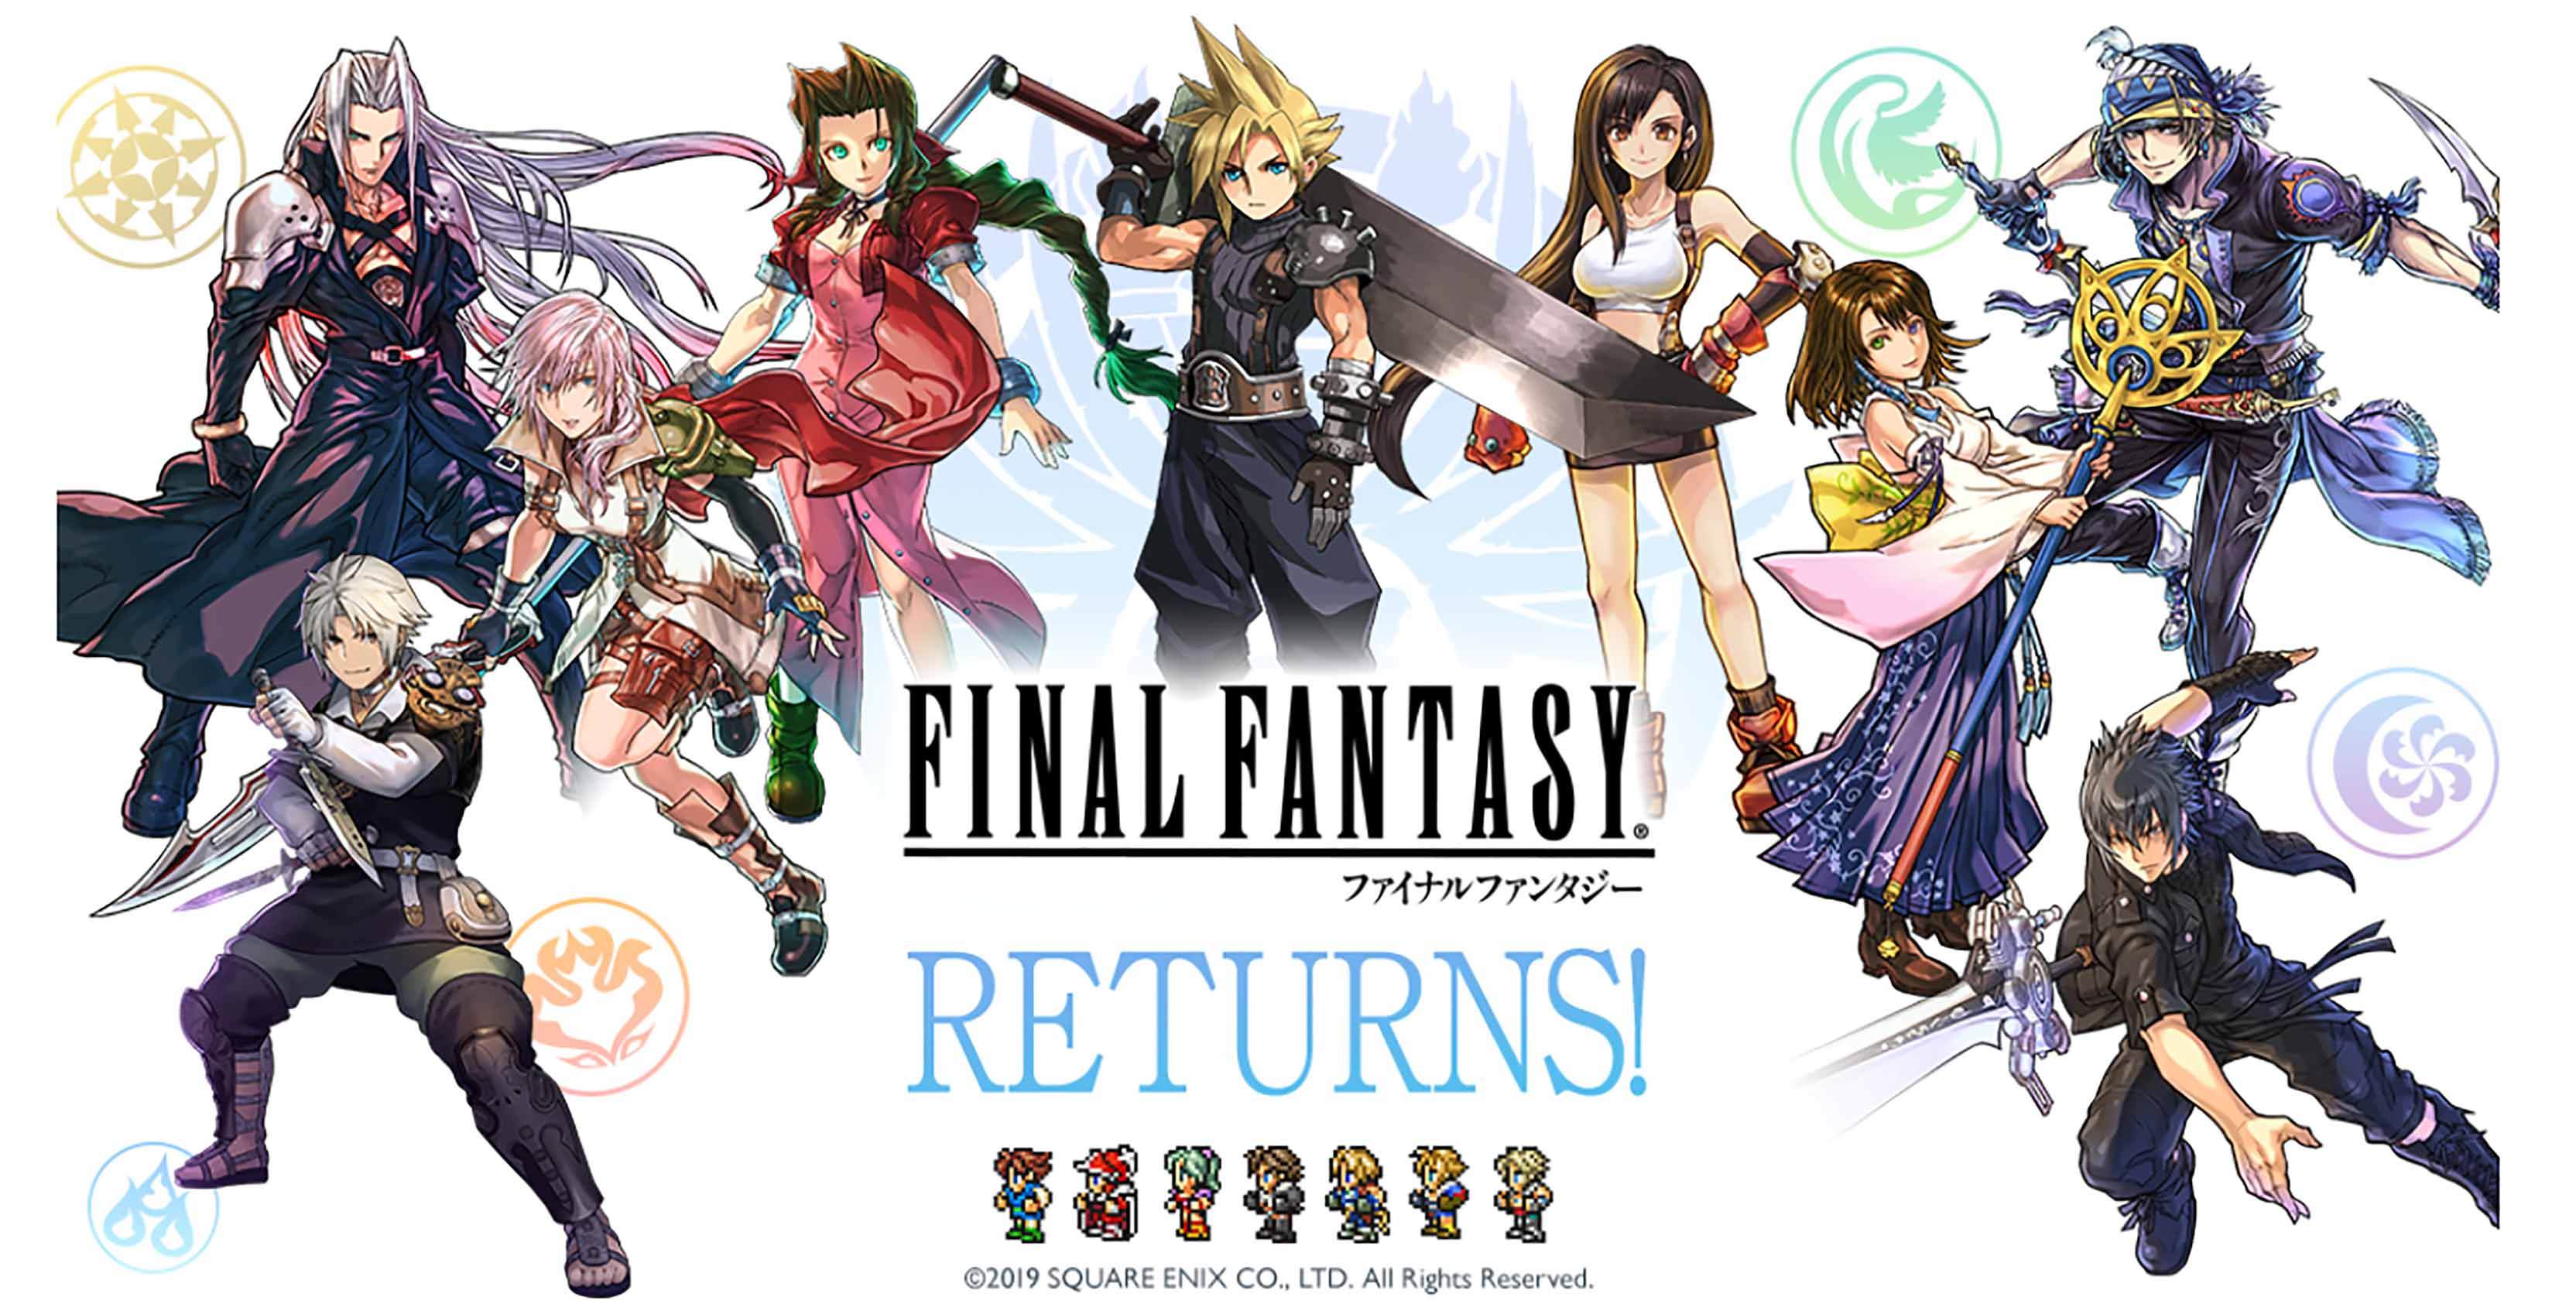 Final Fantasy Puzzles & Dragons collaboration